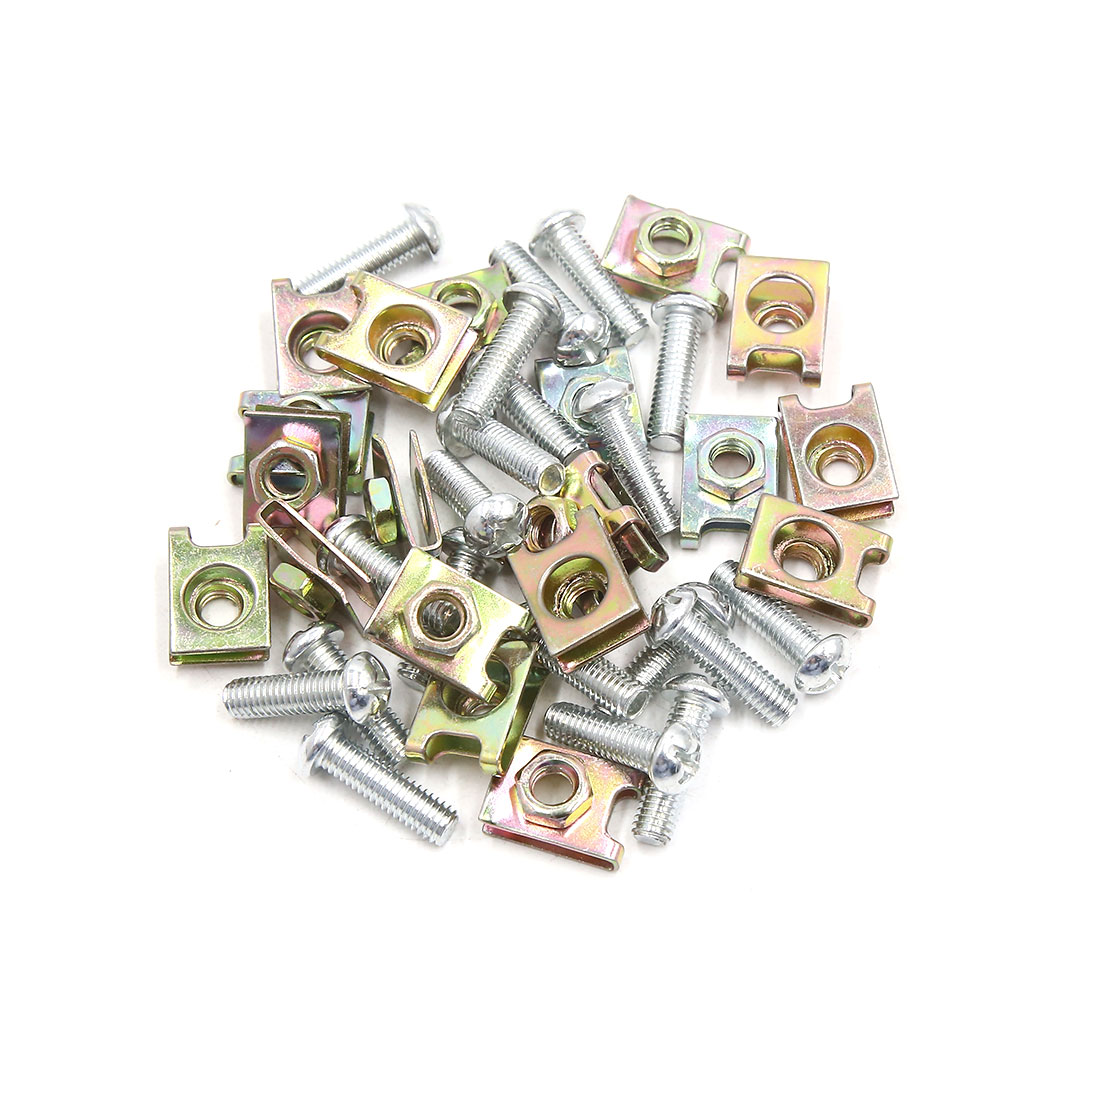 20PCS 6mm Thread Dia License Plate Fairing Fixing Clips Kit w Screw for Car